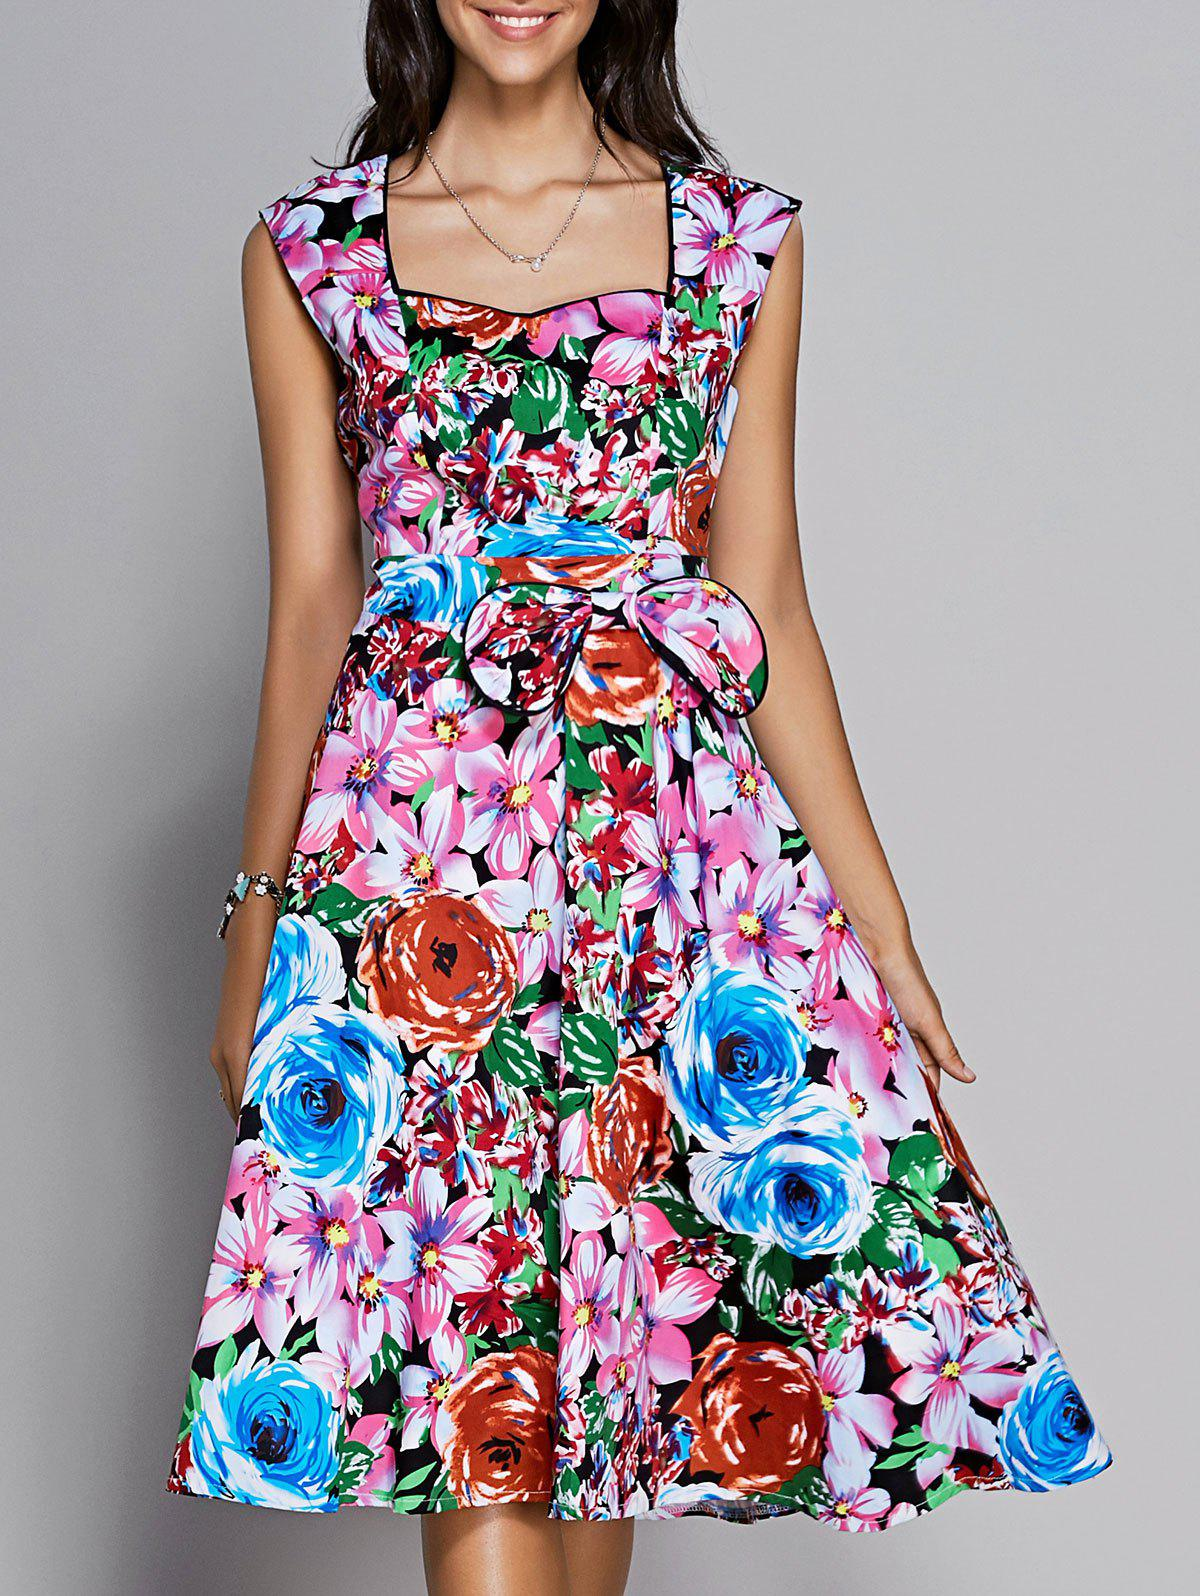 Floral Sweetheart Neck Knee Length Flare Dress DRESSFO